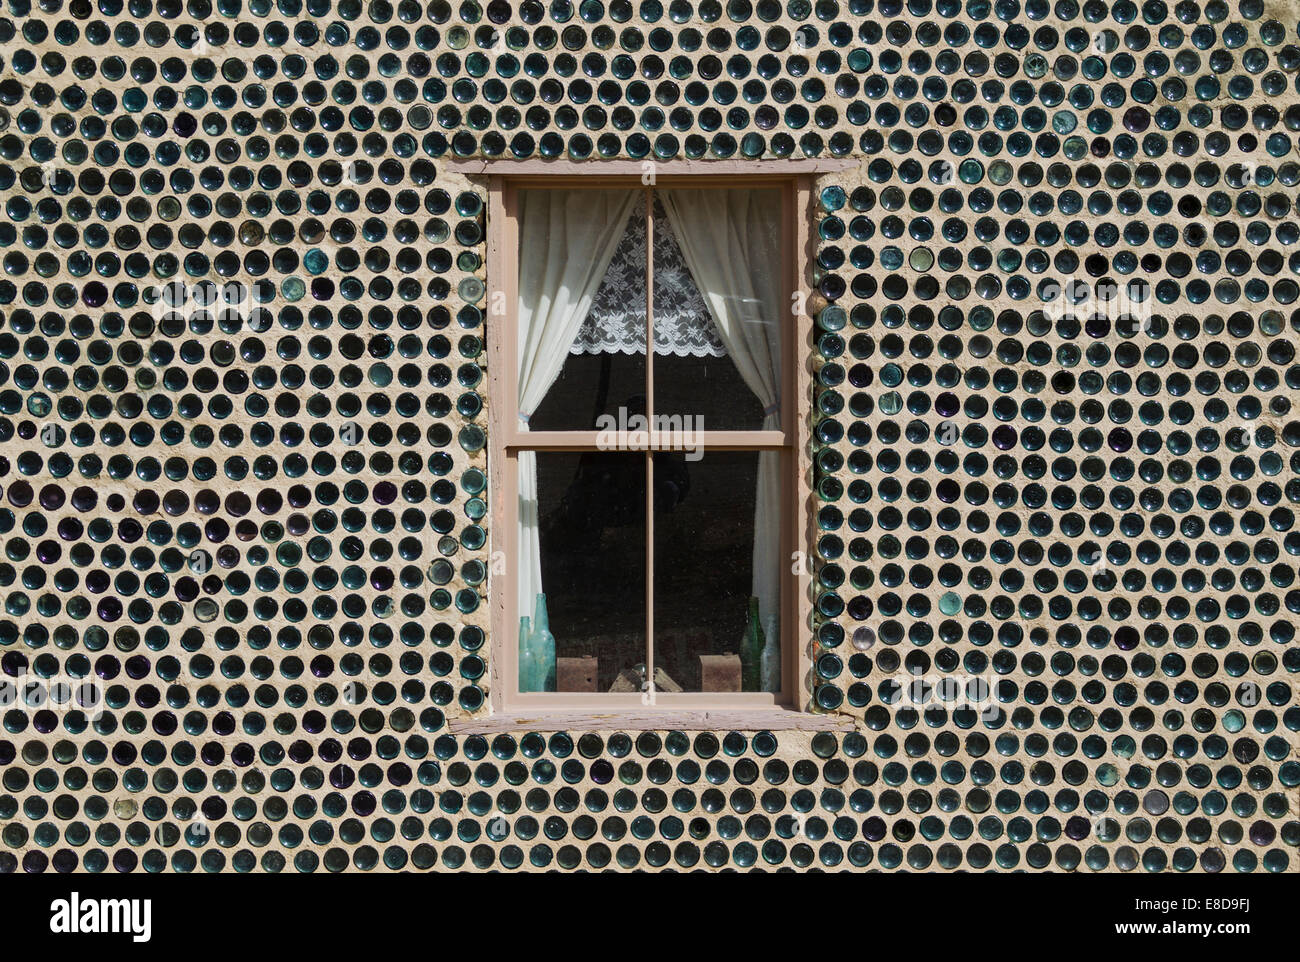 The famous 'Bottle House', built from more than 30.000 bottles, ghost town of Rhyolite, Nevada, USA - Stock Image